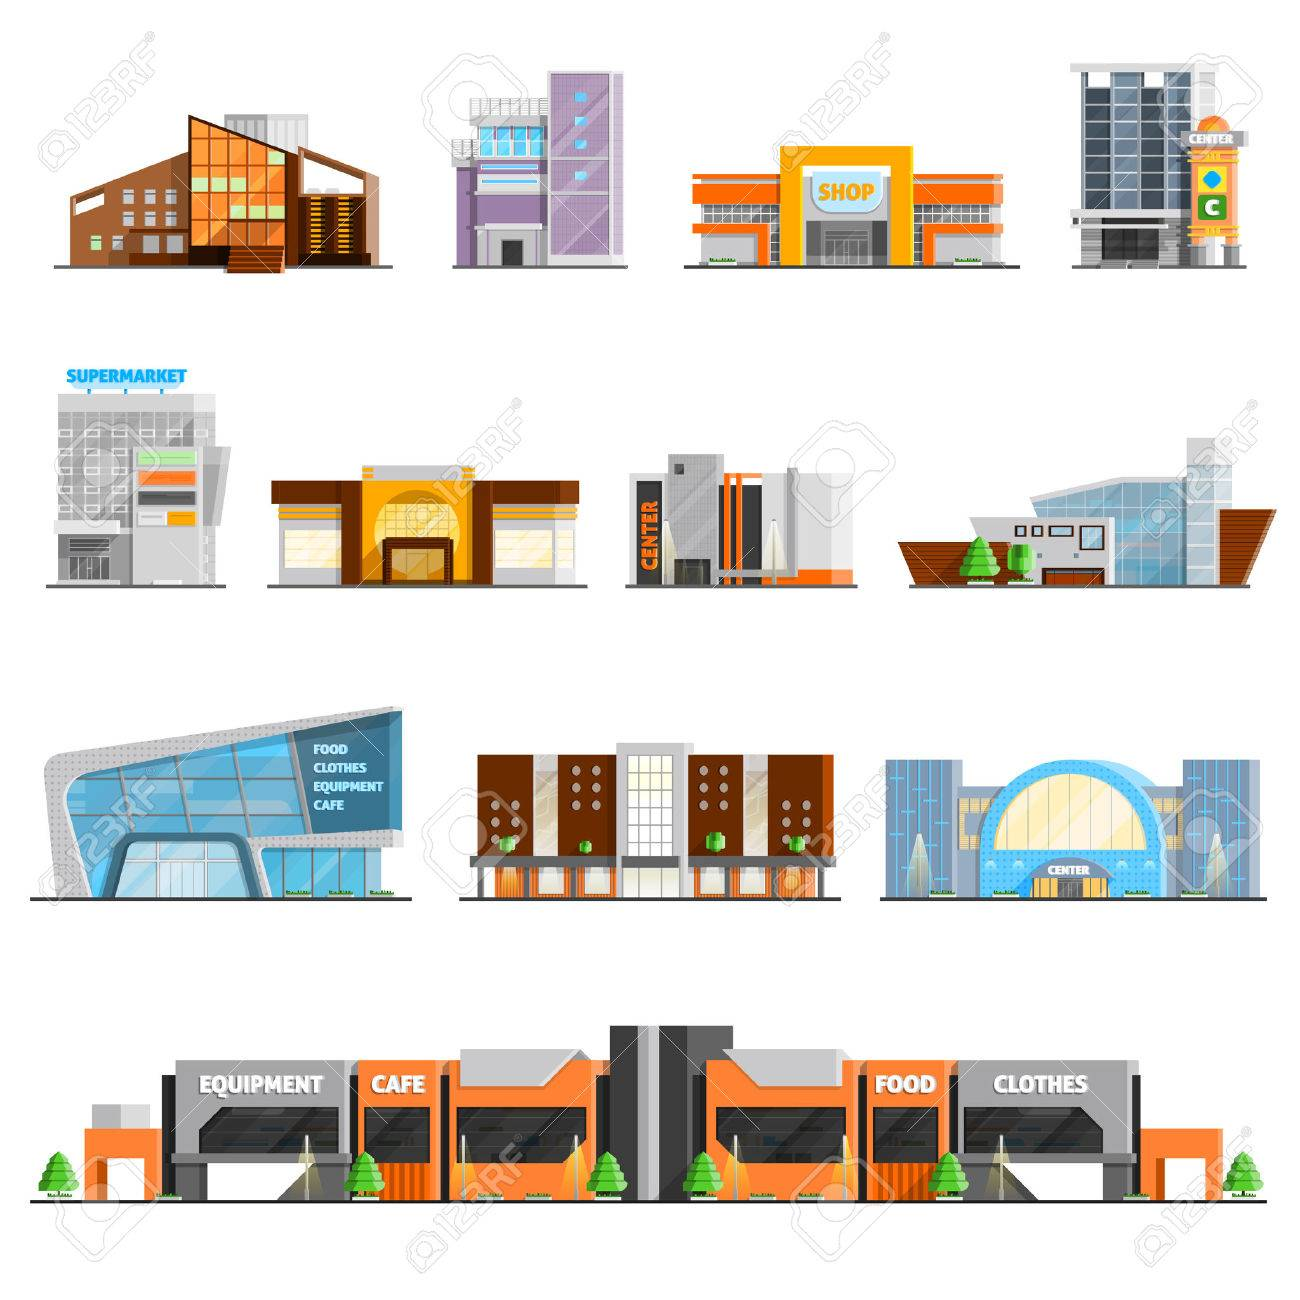 Shopping mall building orthogonal icons set with cafe and clothes symbols flat isolated vector illustration - 53875135